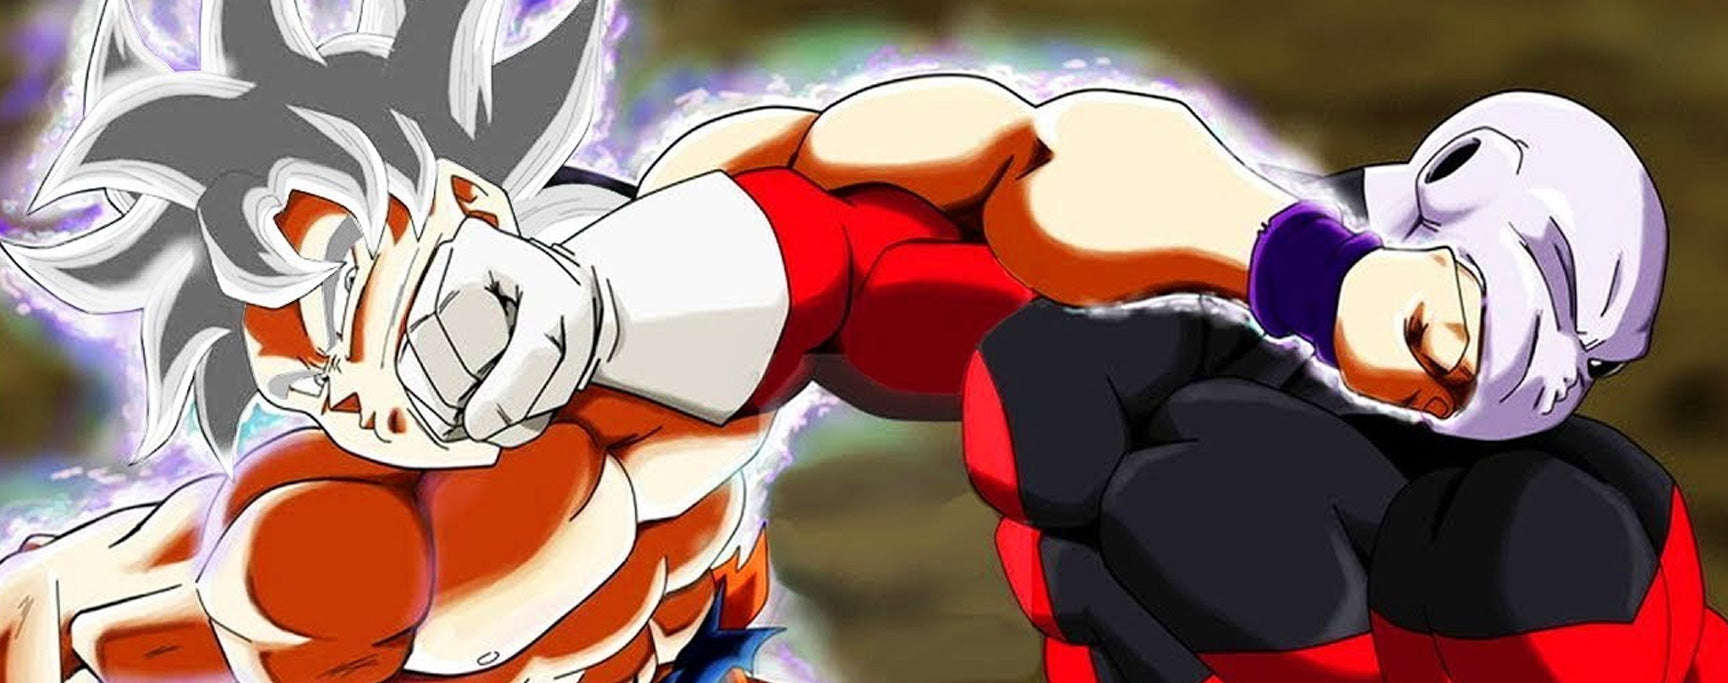 Ultra Instinct vs Jiren